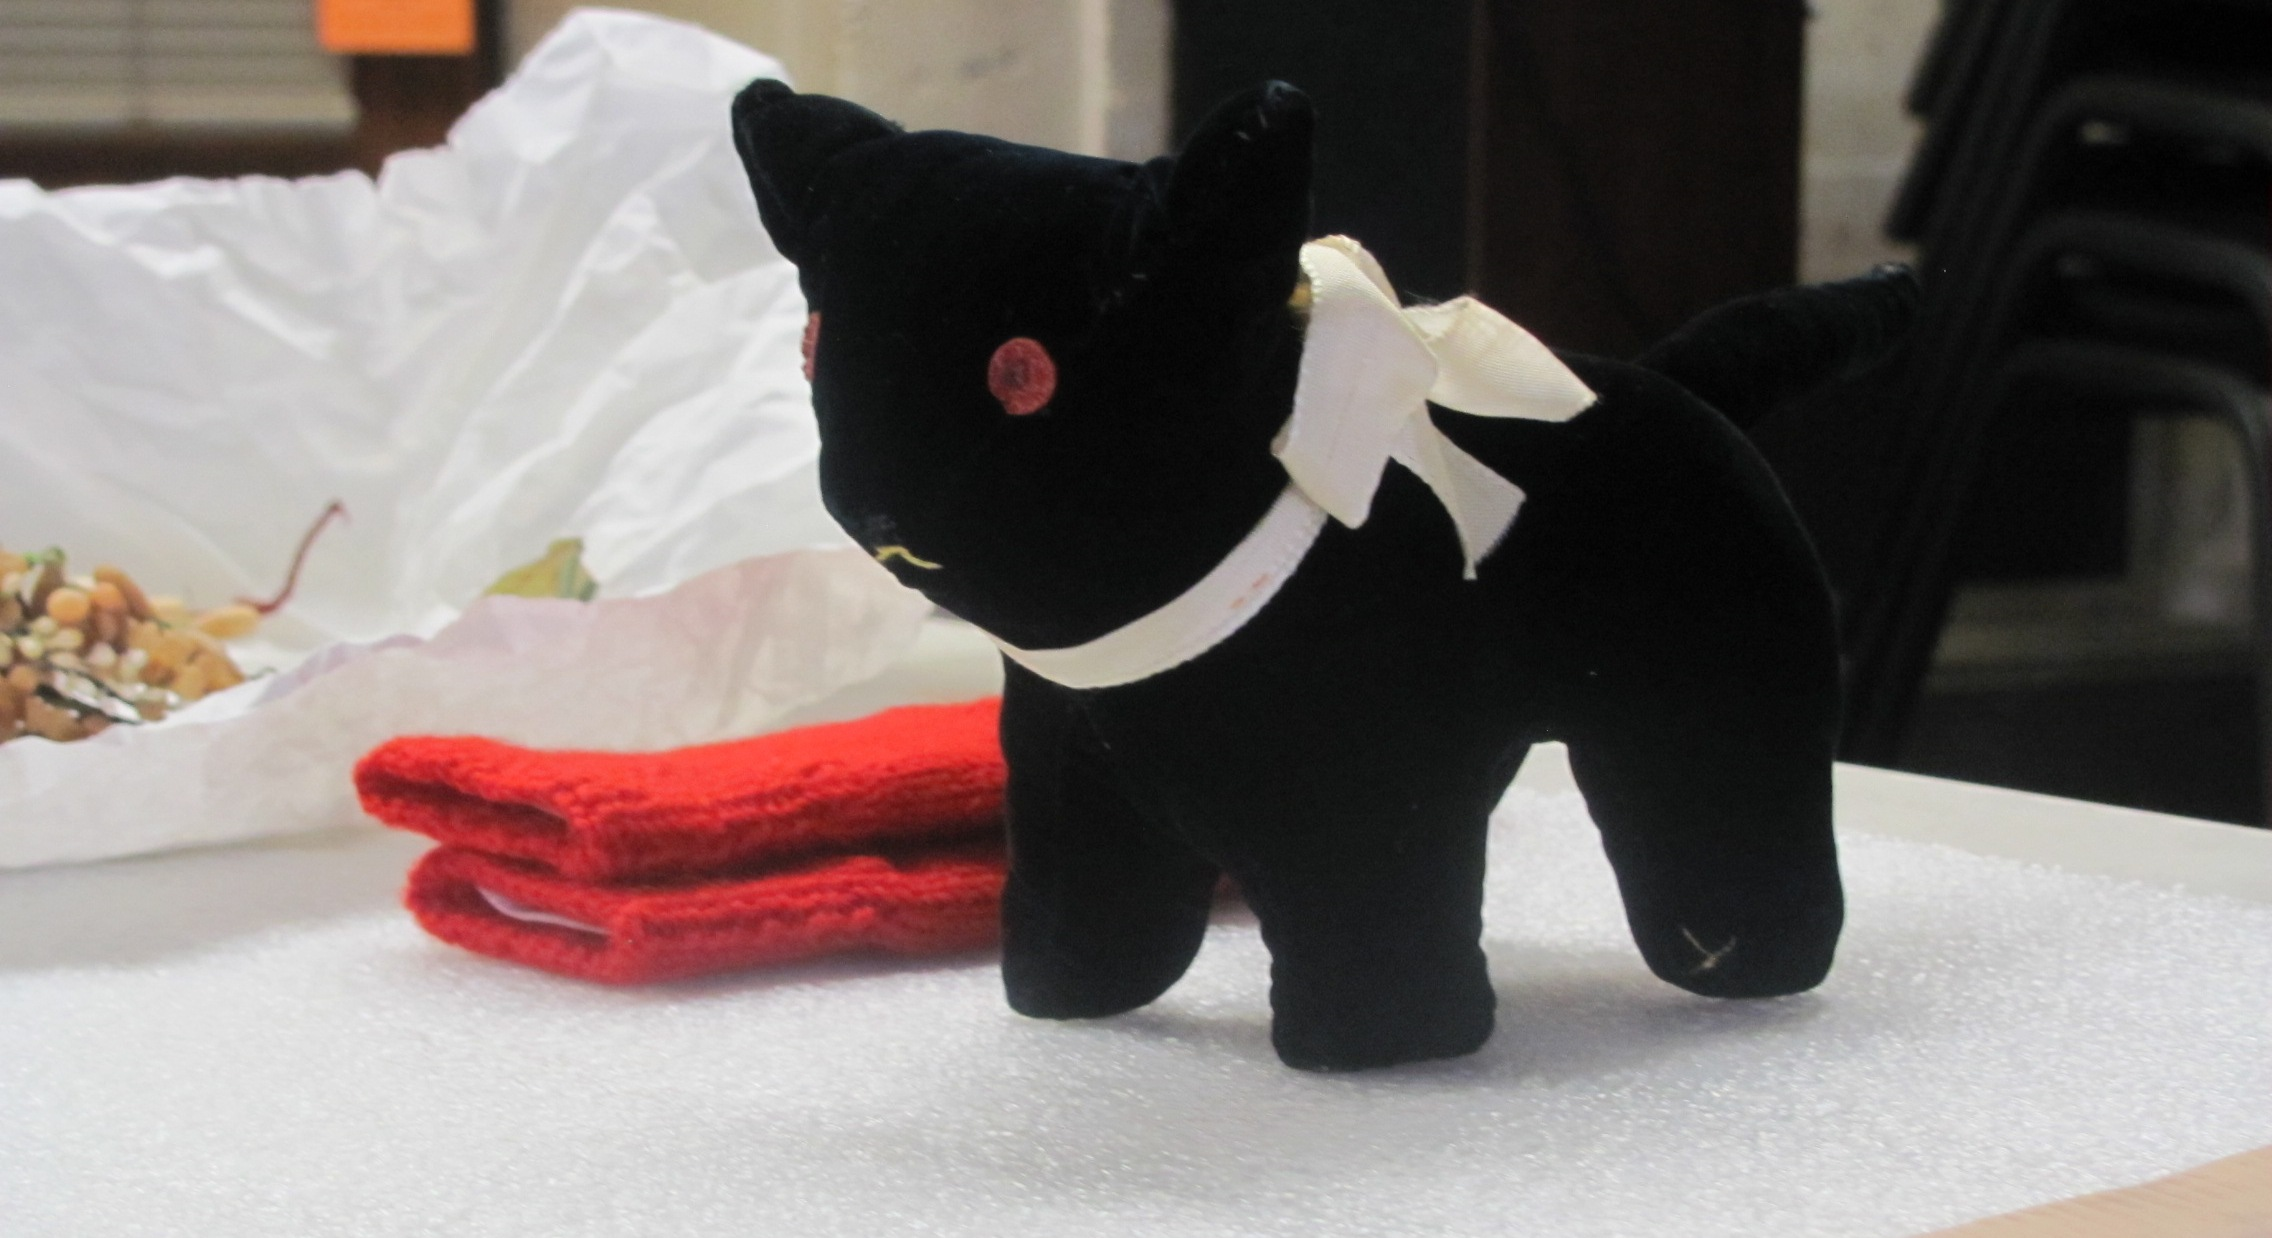 A small black stuffed animal cat sits on a table with various other collections items behind it.